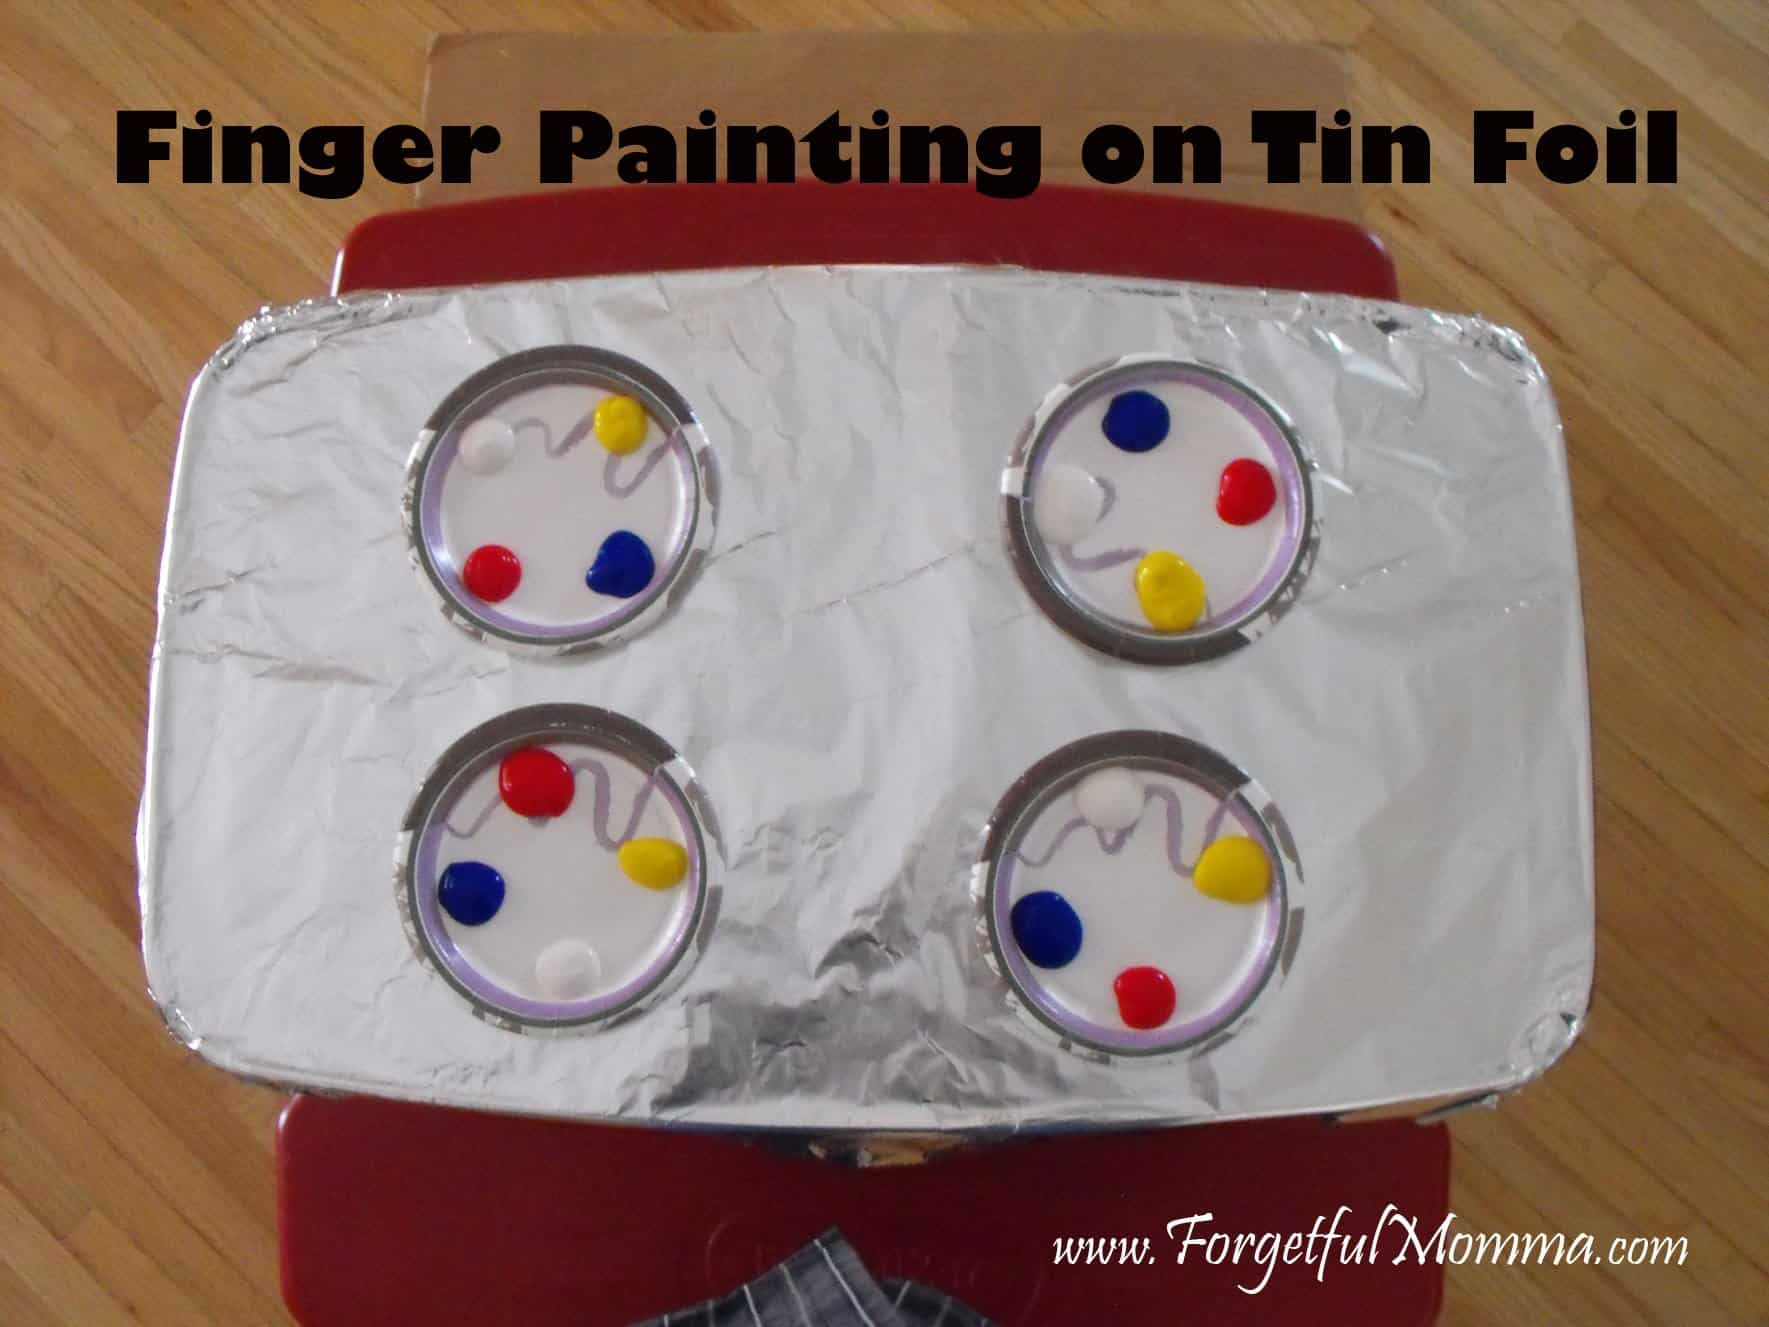 Finger Painting on Tin Foil